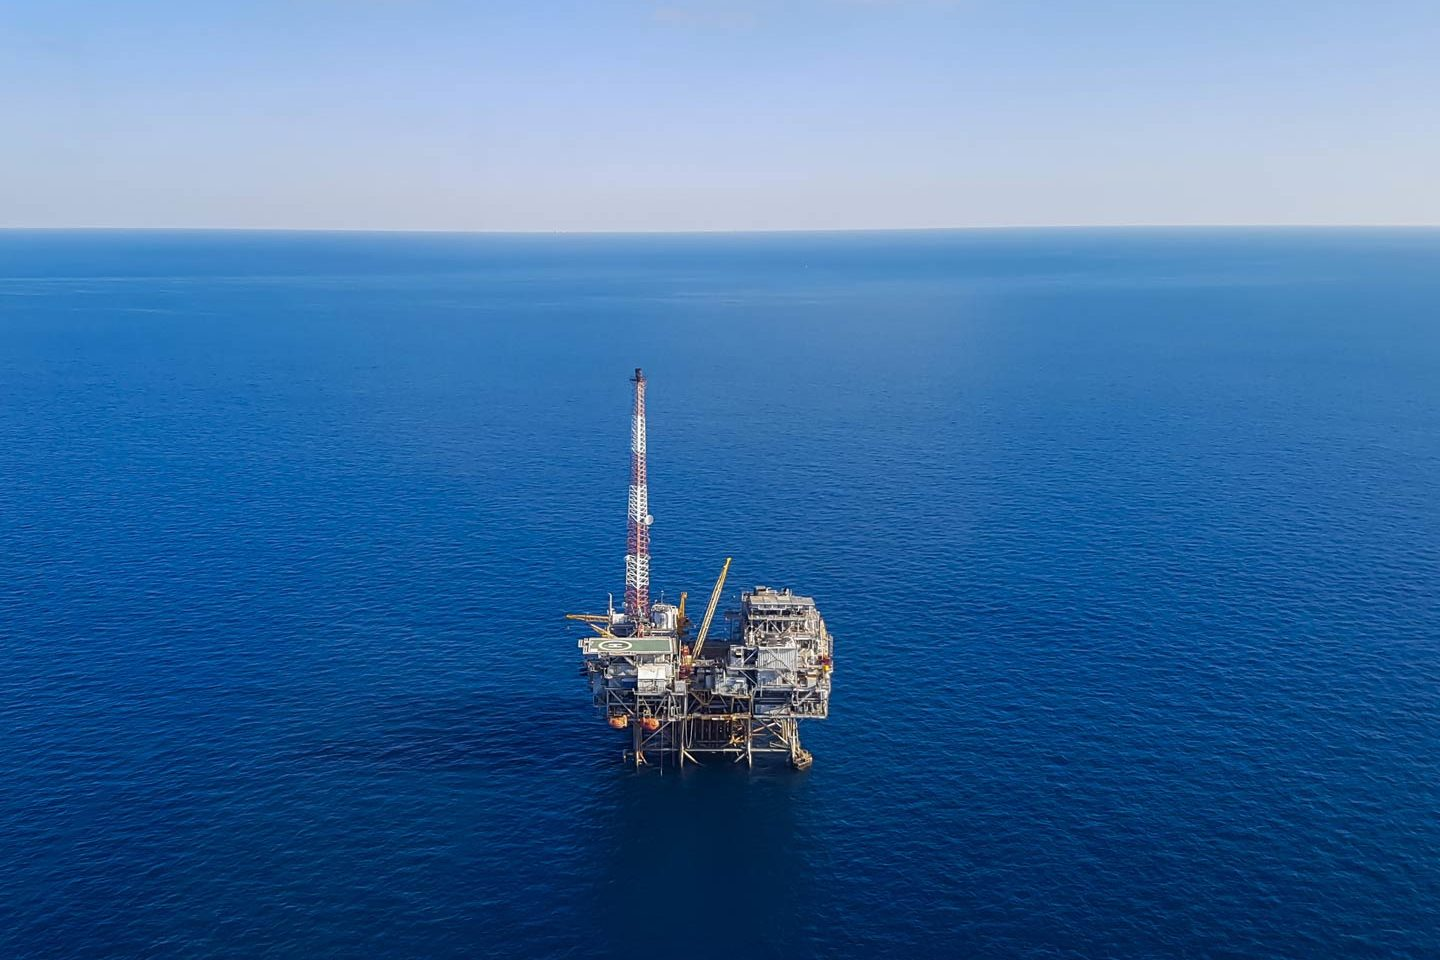 An aerial view of an oil rig in the Gulf of Mexico